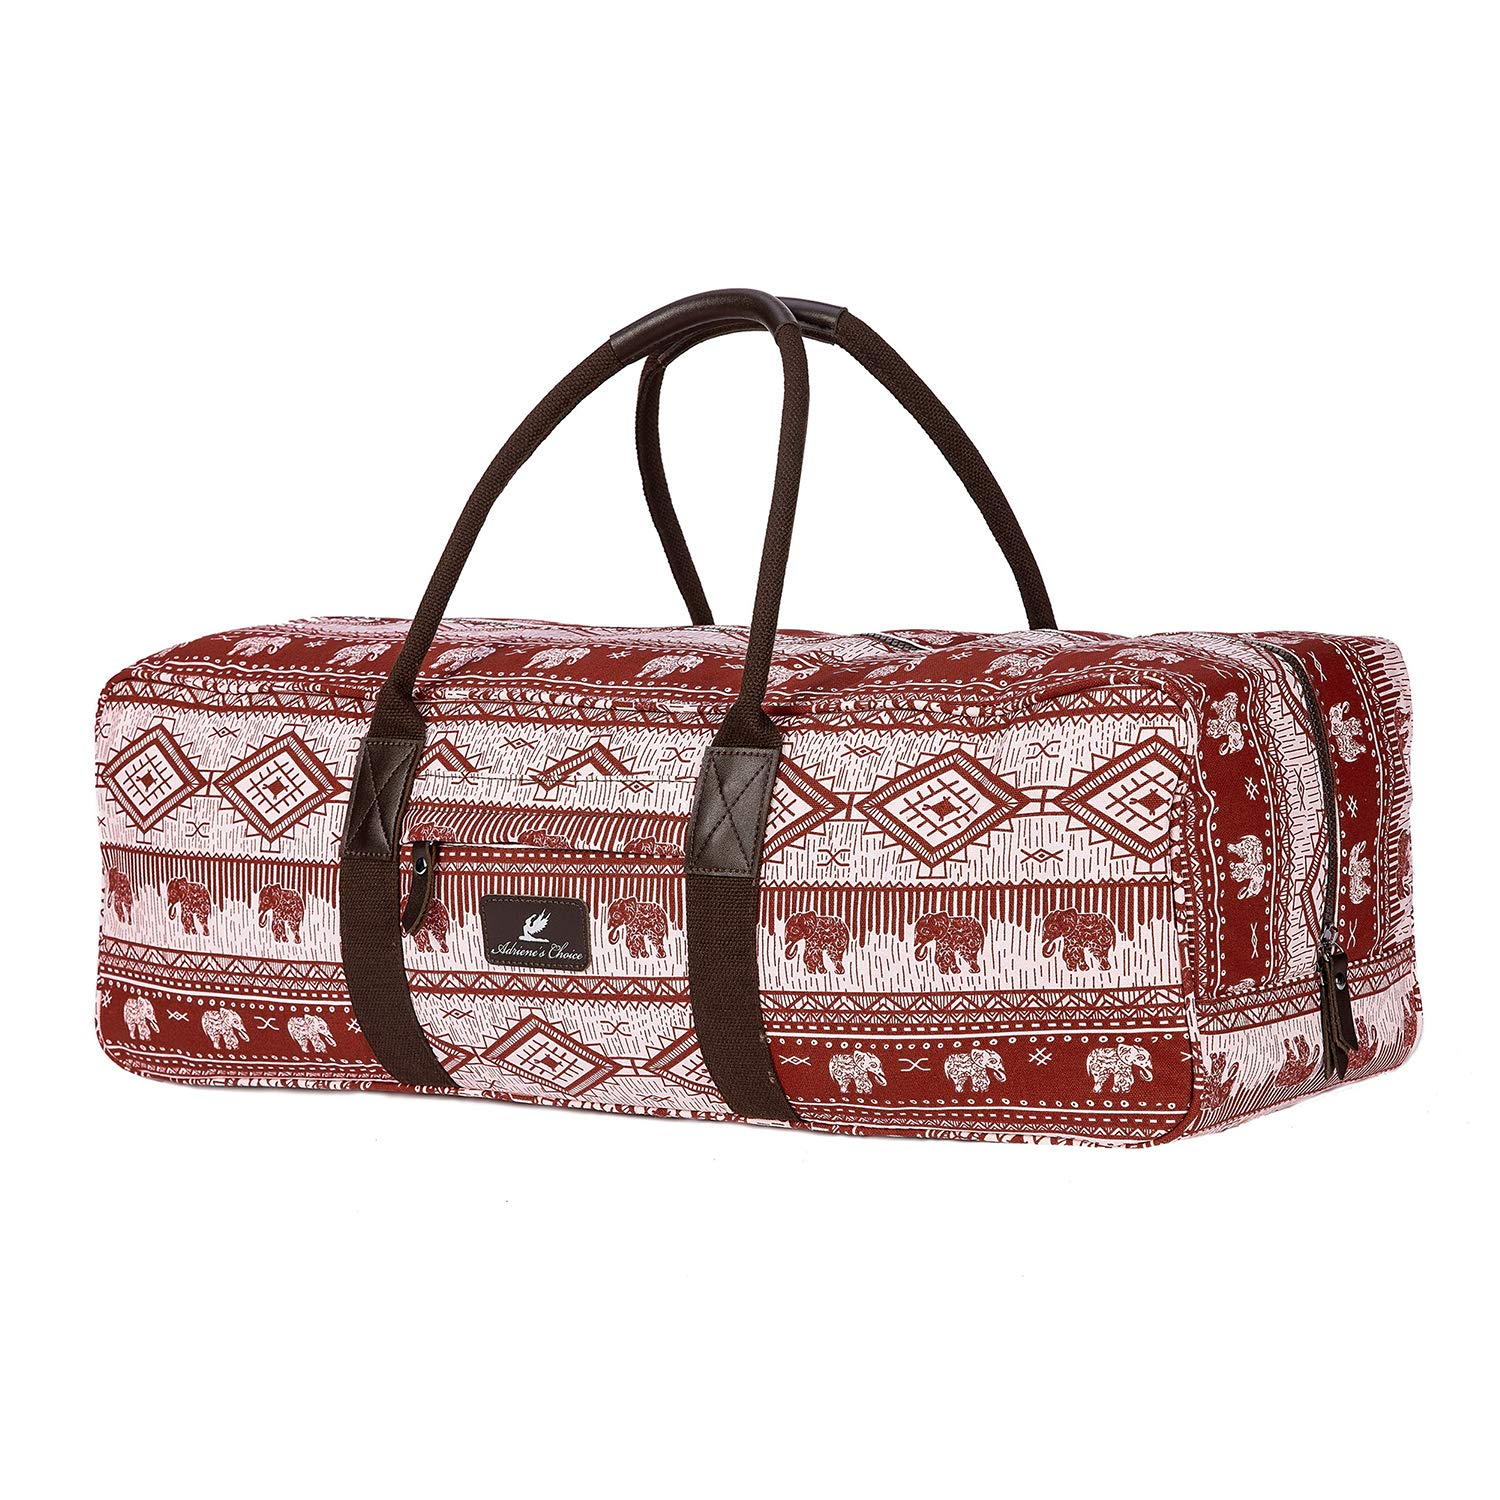 Professional Yoga Mat Bag, Extra Large Yoga Mat and Accessories Carrier, Gym Duffel Holdall Bag, Fits Standard Size & Thick Mats (Extra Large, XL) (Wine Red)